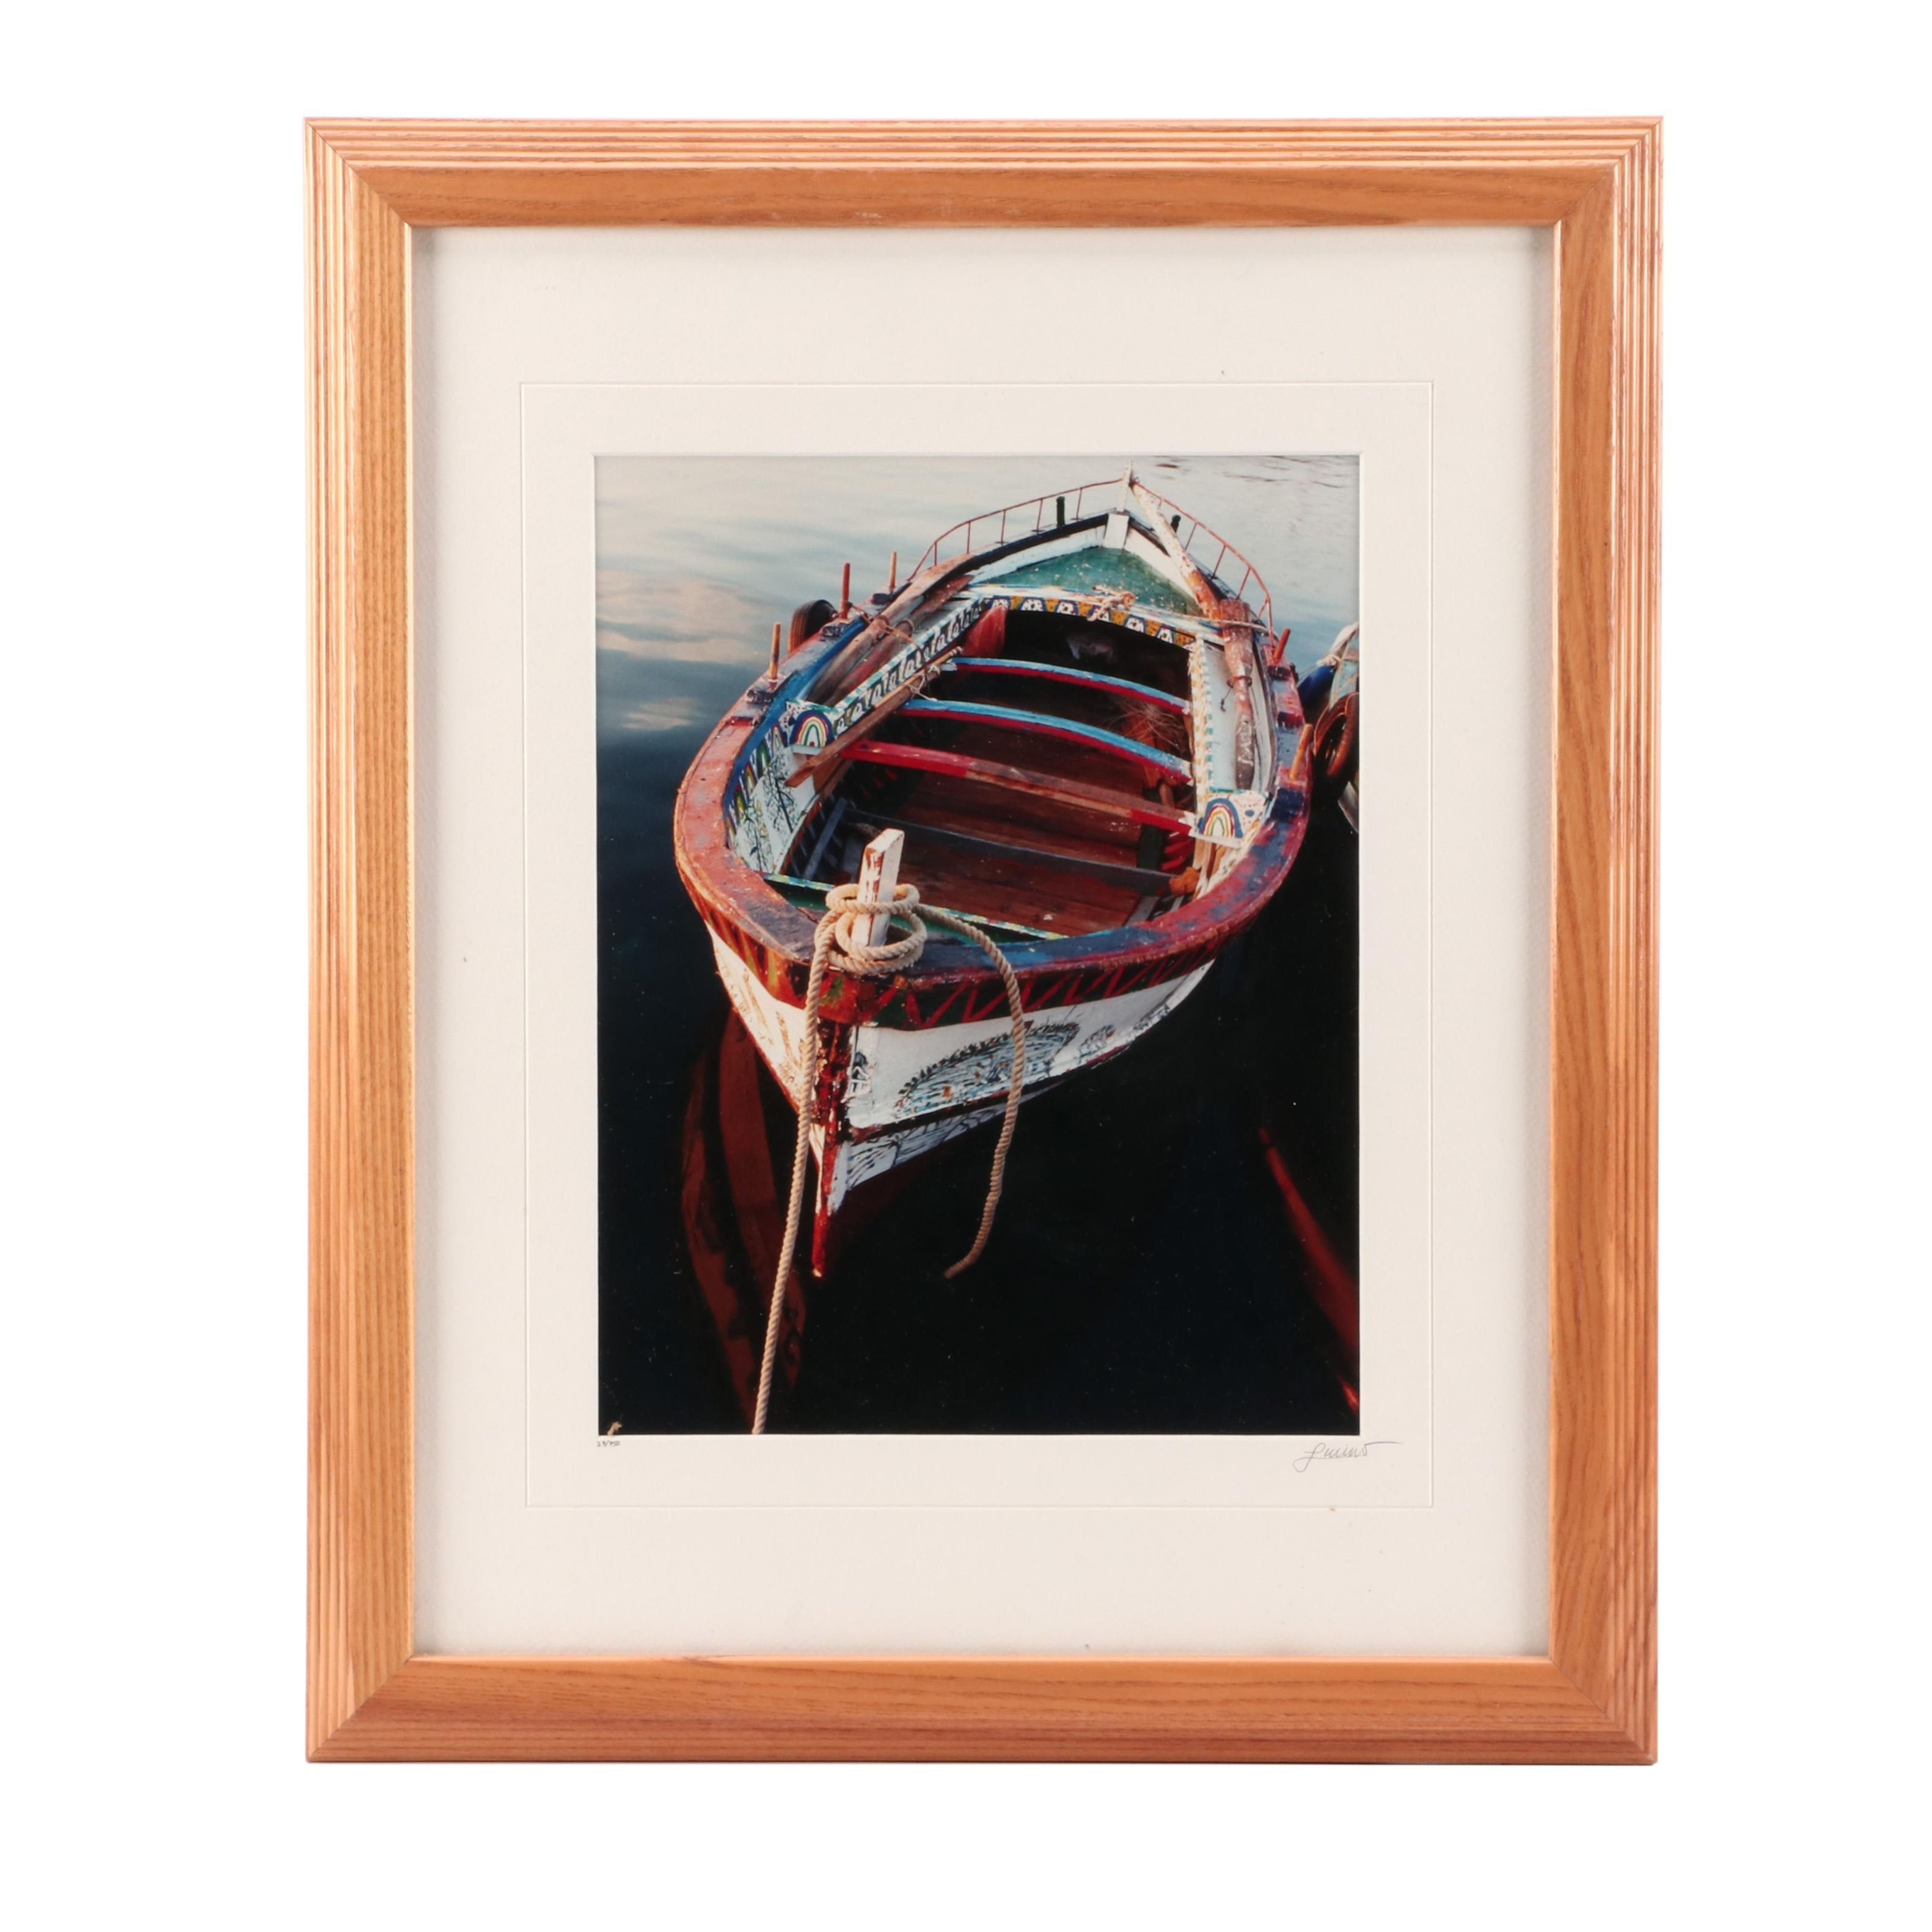 Limited Edition Chromogenic Color Photograph of Painted Boat